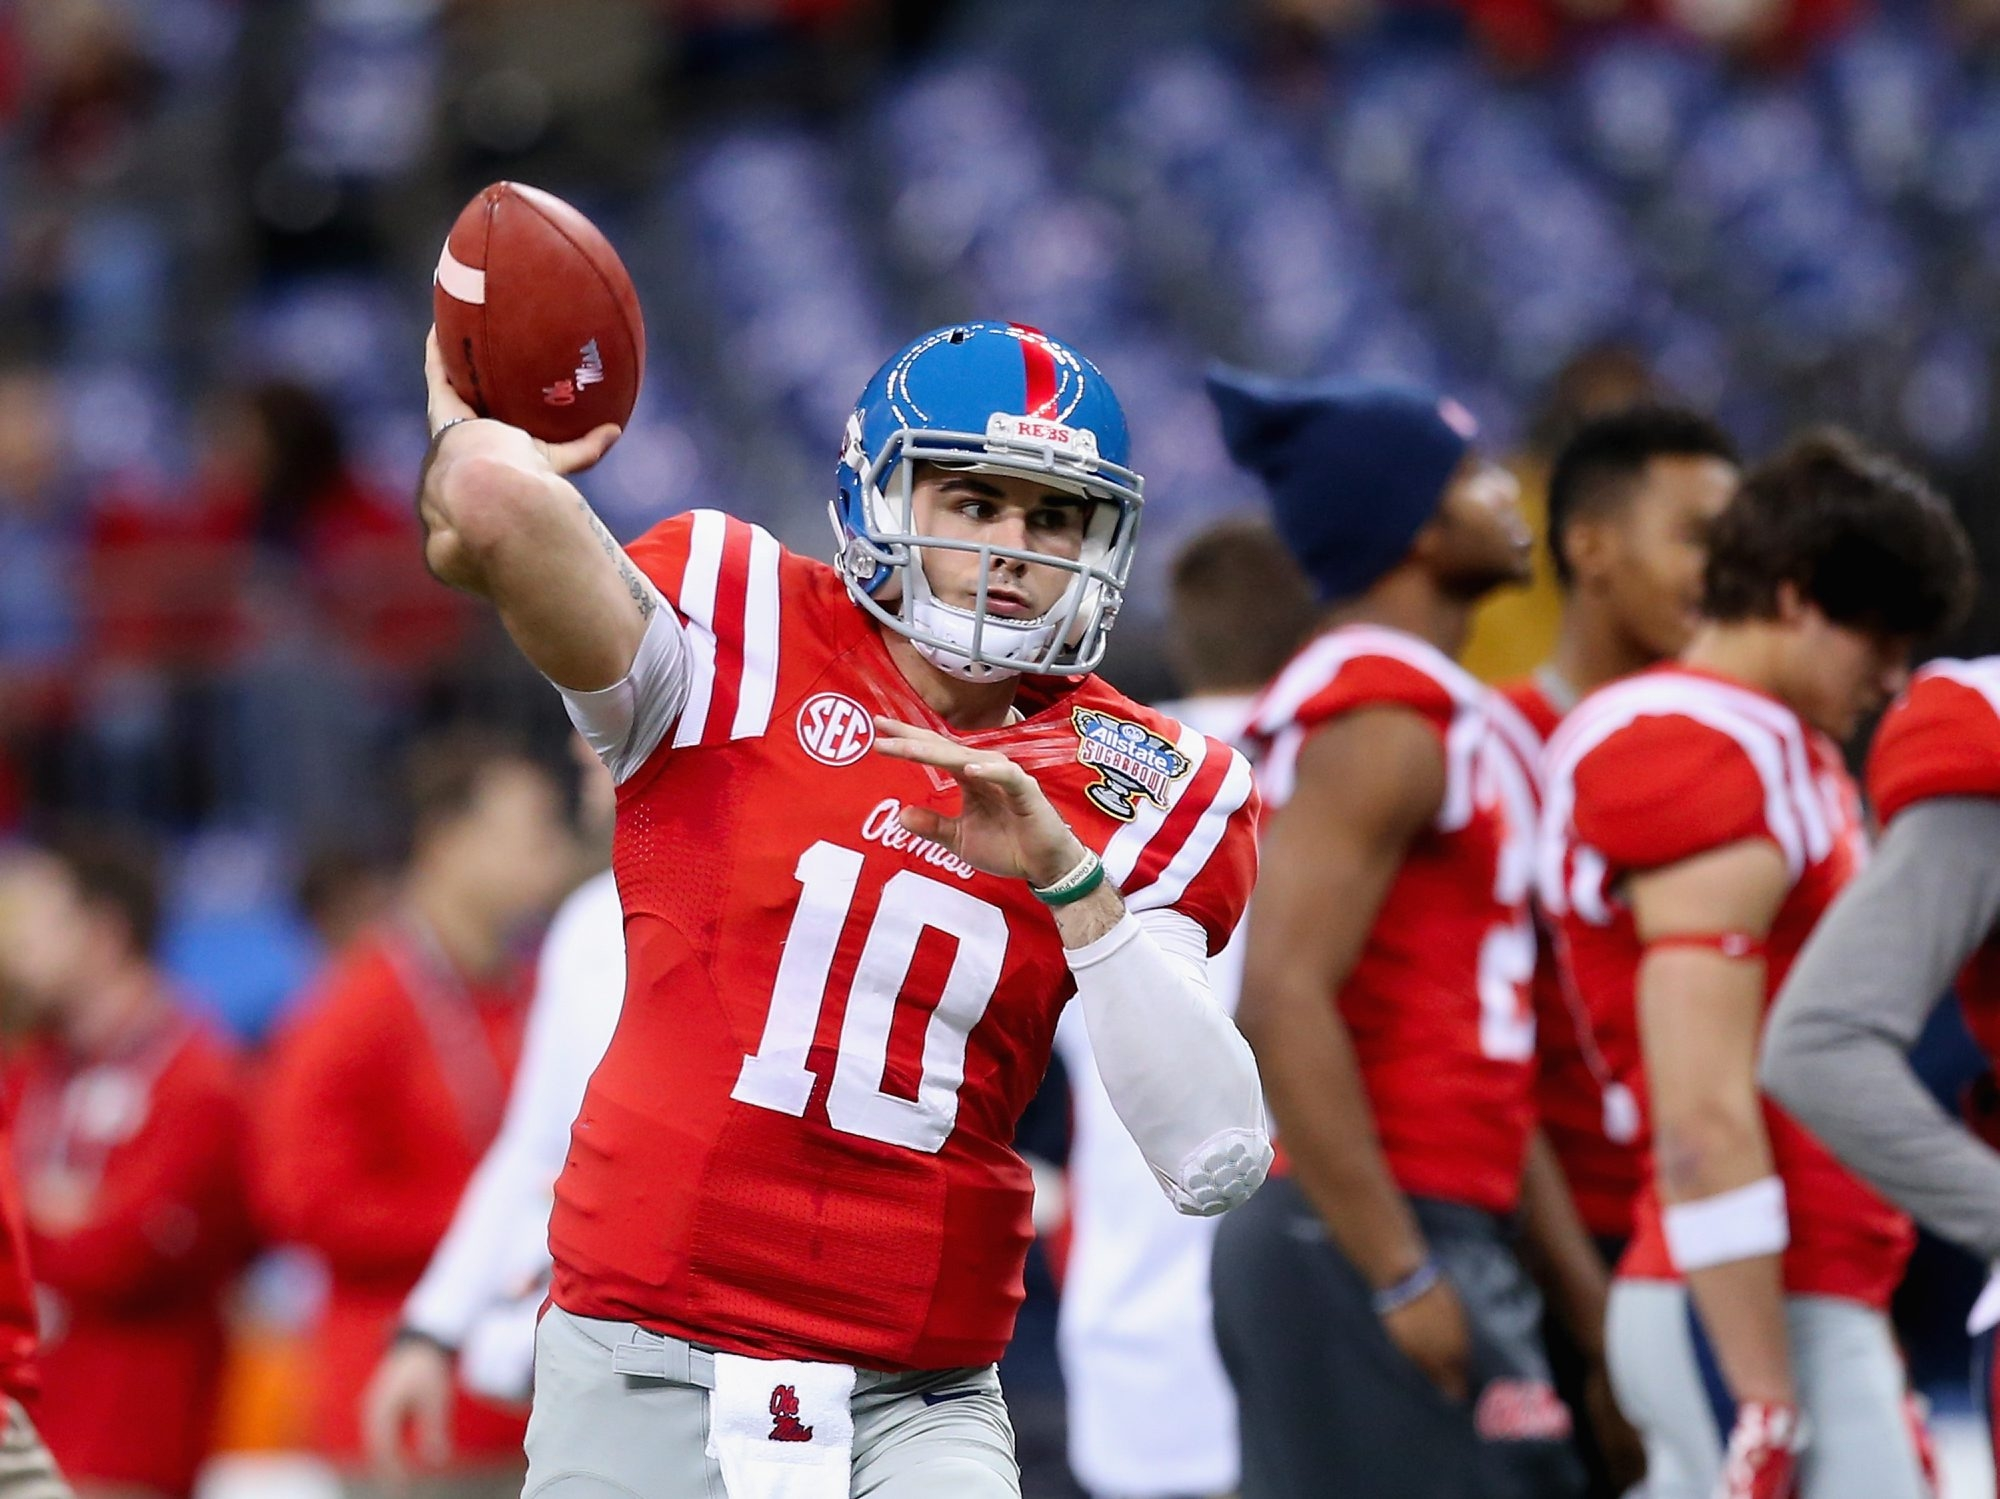 St. Joe's graduate Chad Kelly had an excellent season that included a standout performance in the Sugar Bowl.